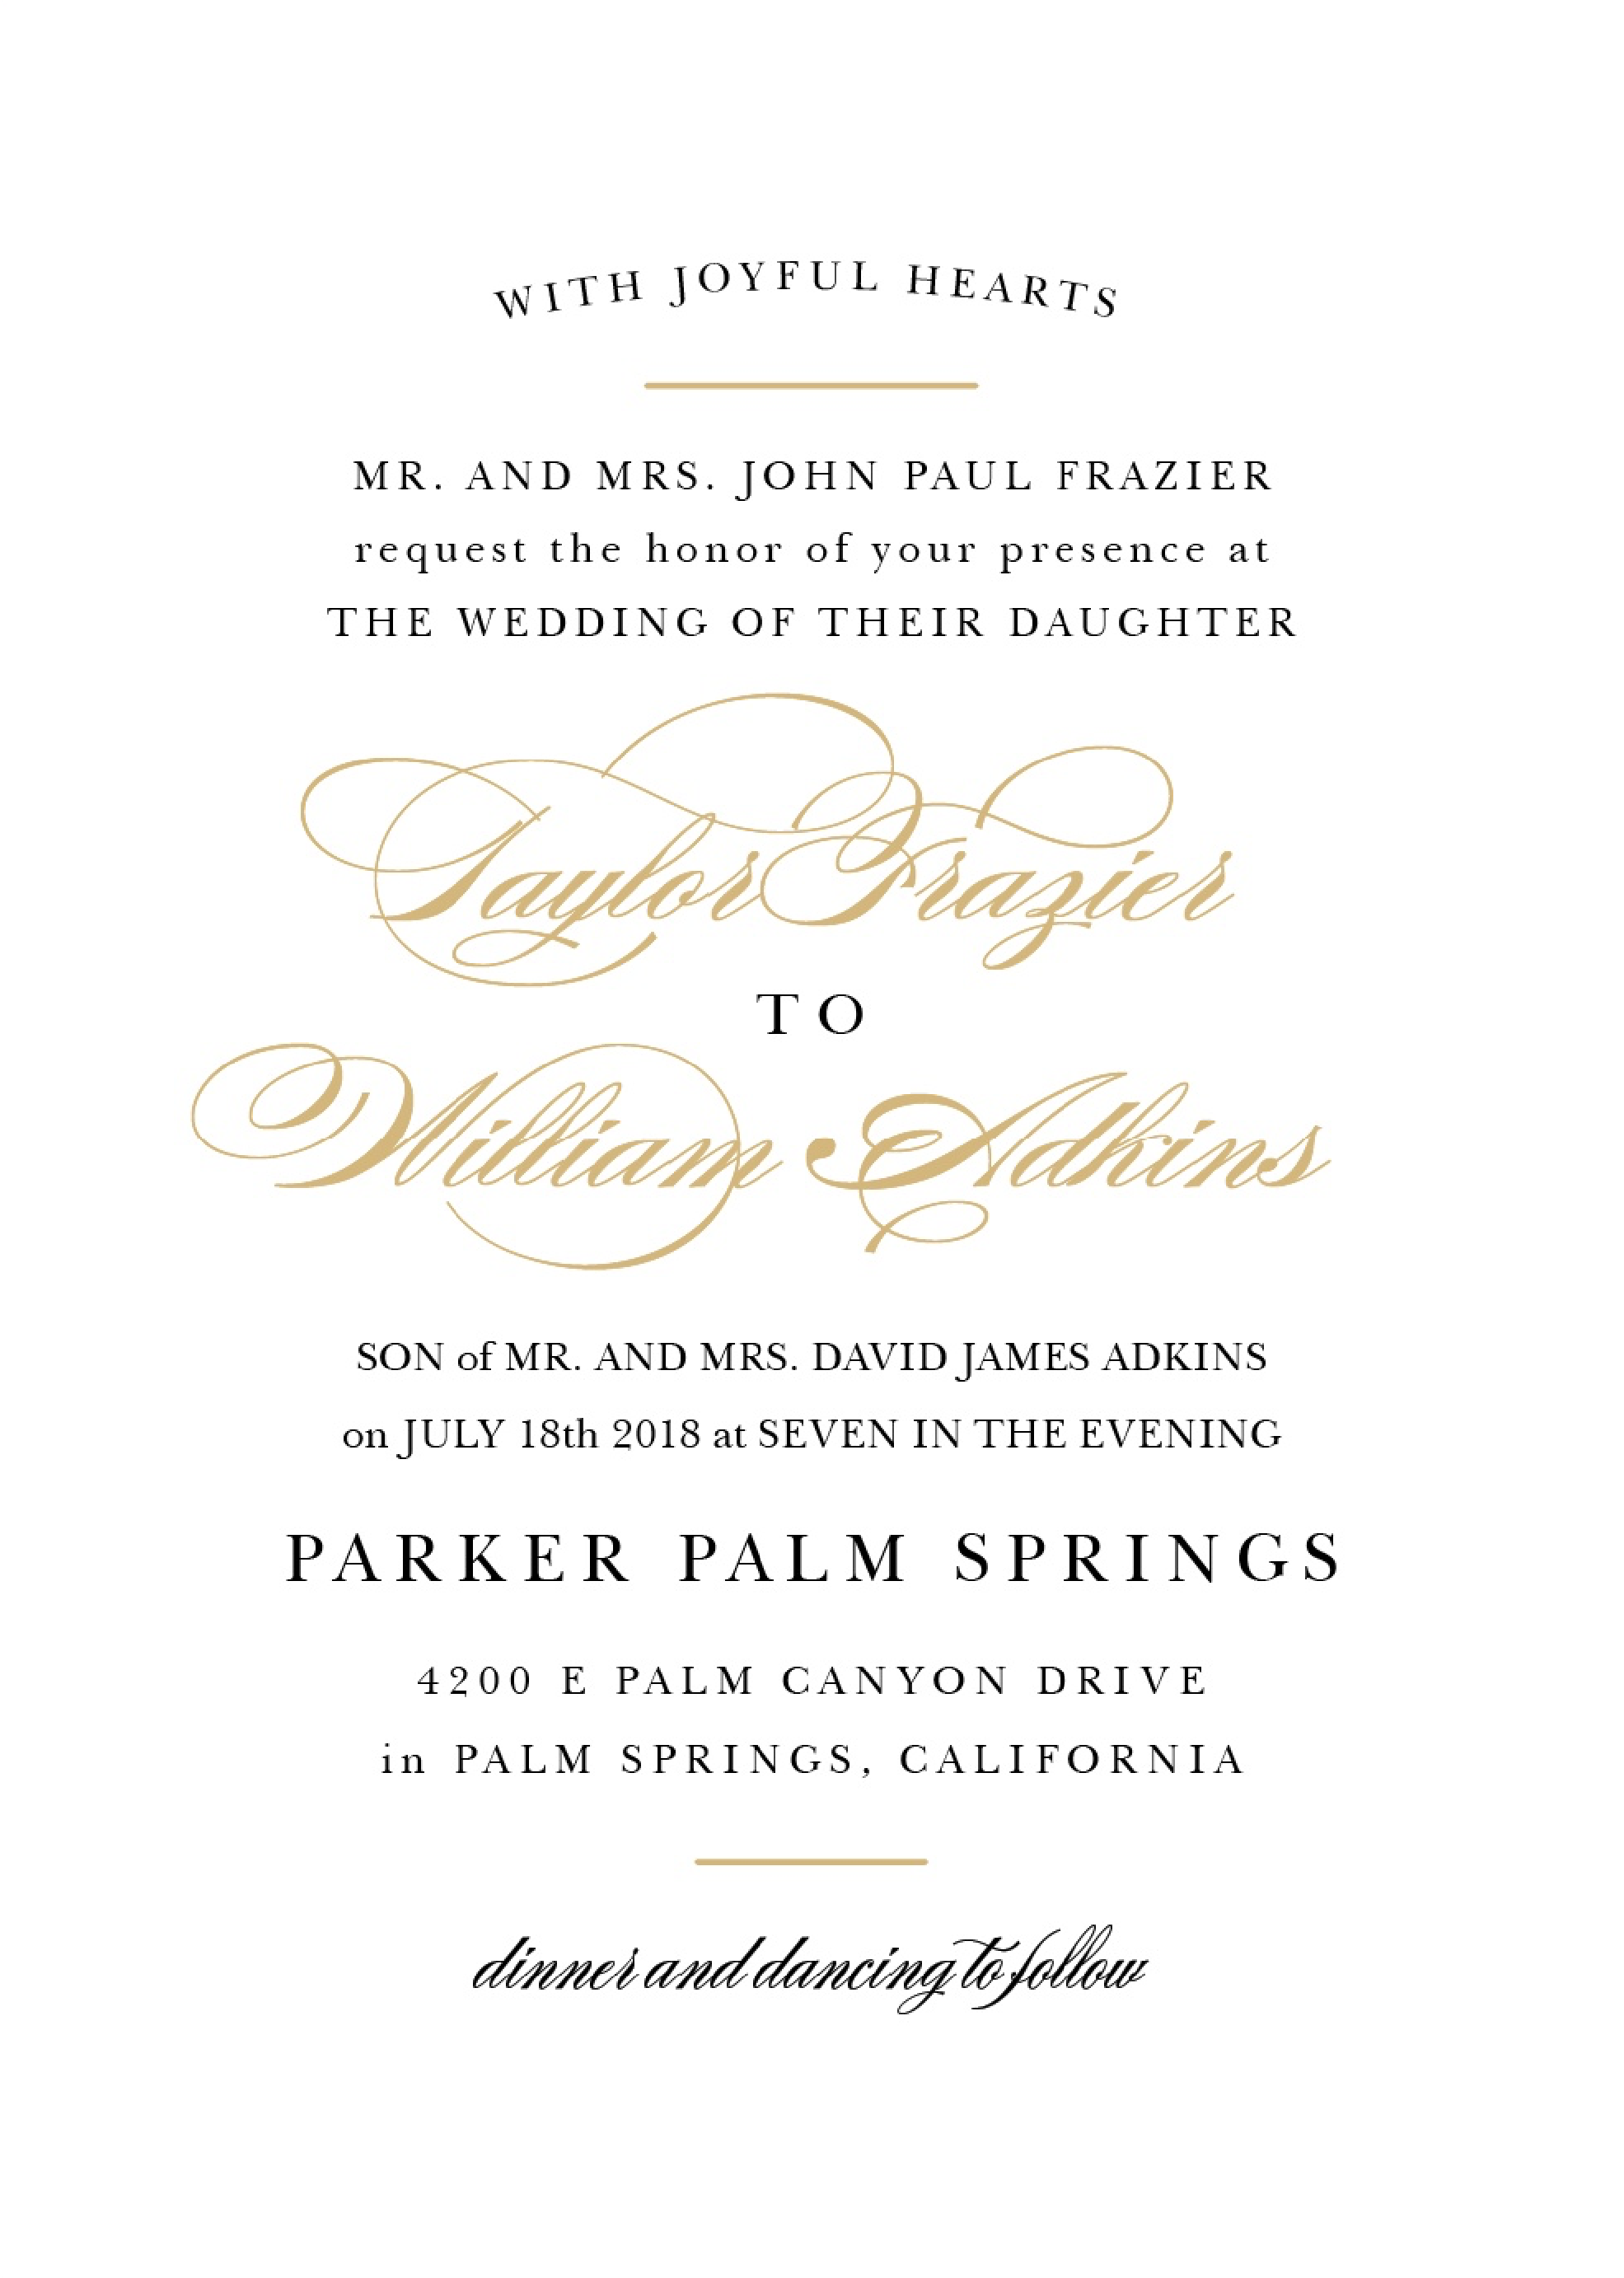 Wedding Invitation Wording Samples Wedding Invitation Wording Examples Wedding Invitations Examples Wedding Invitation Wording Templates